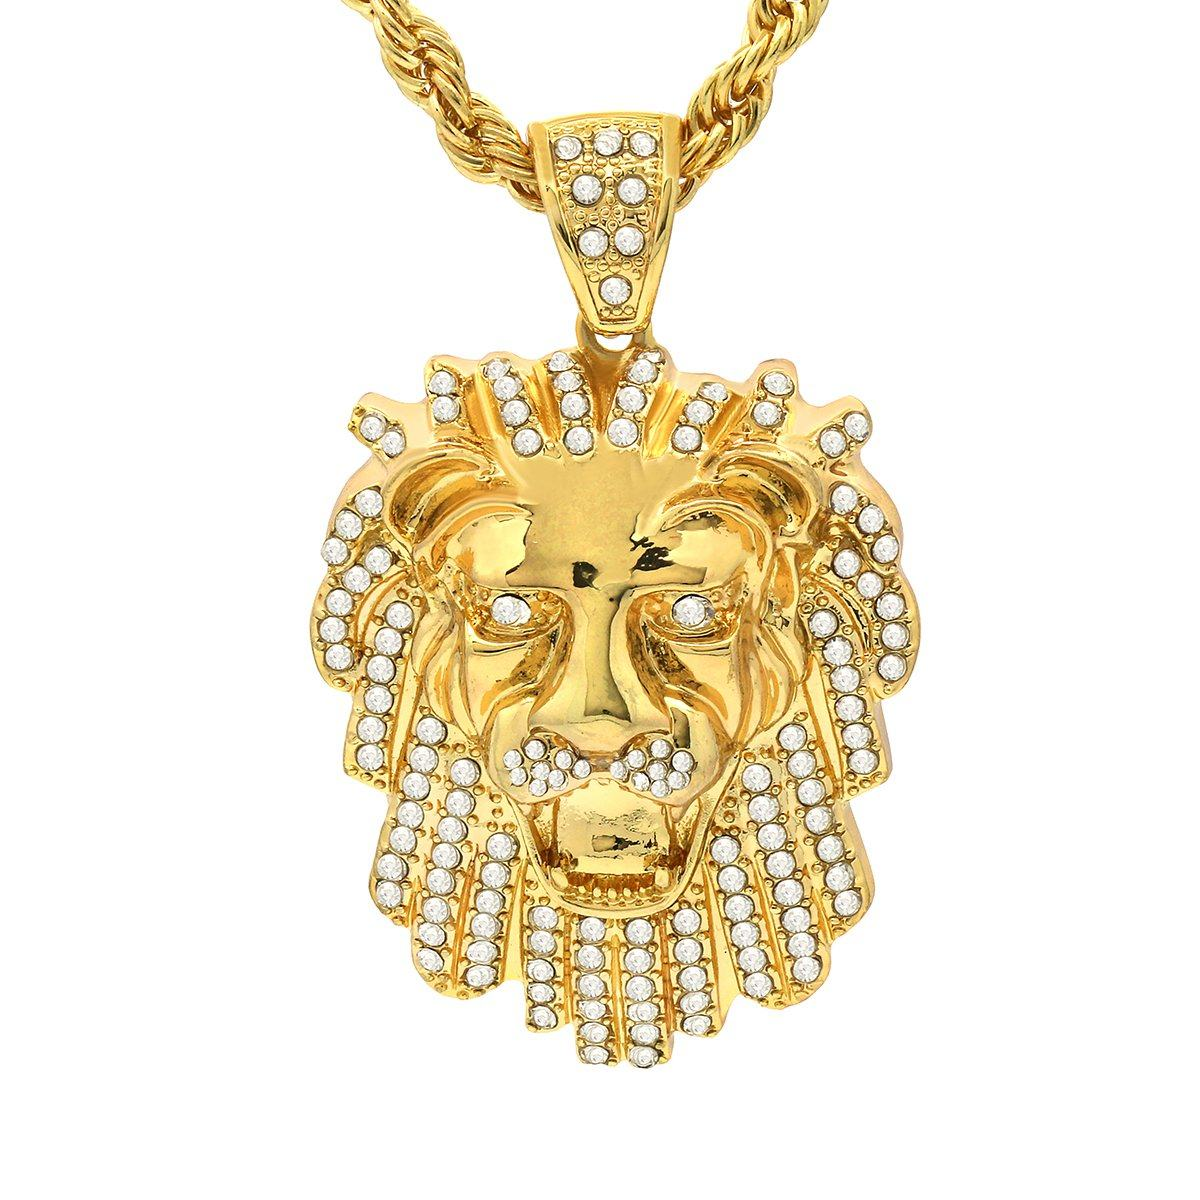 14k Gold Filled Lion Pendant with Rope Chain